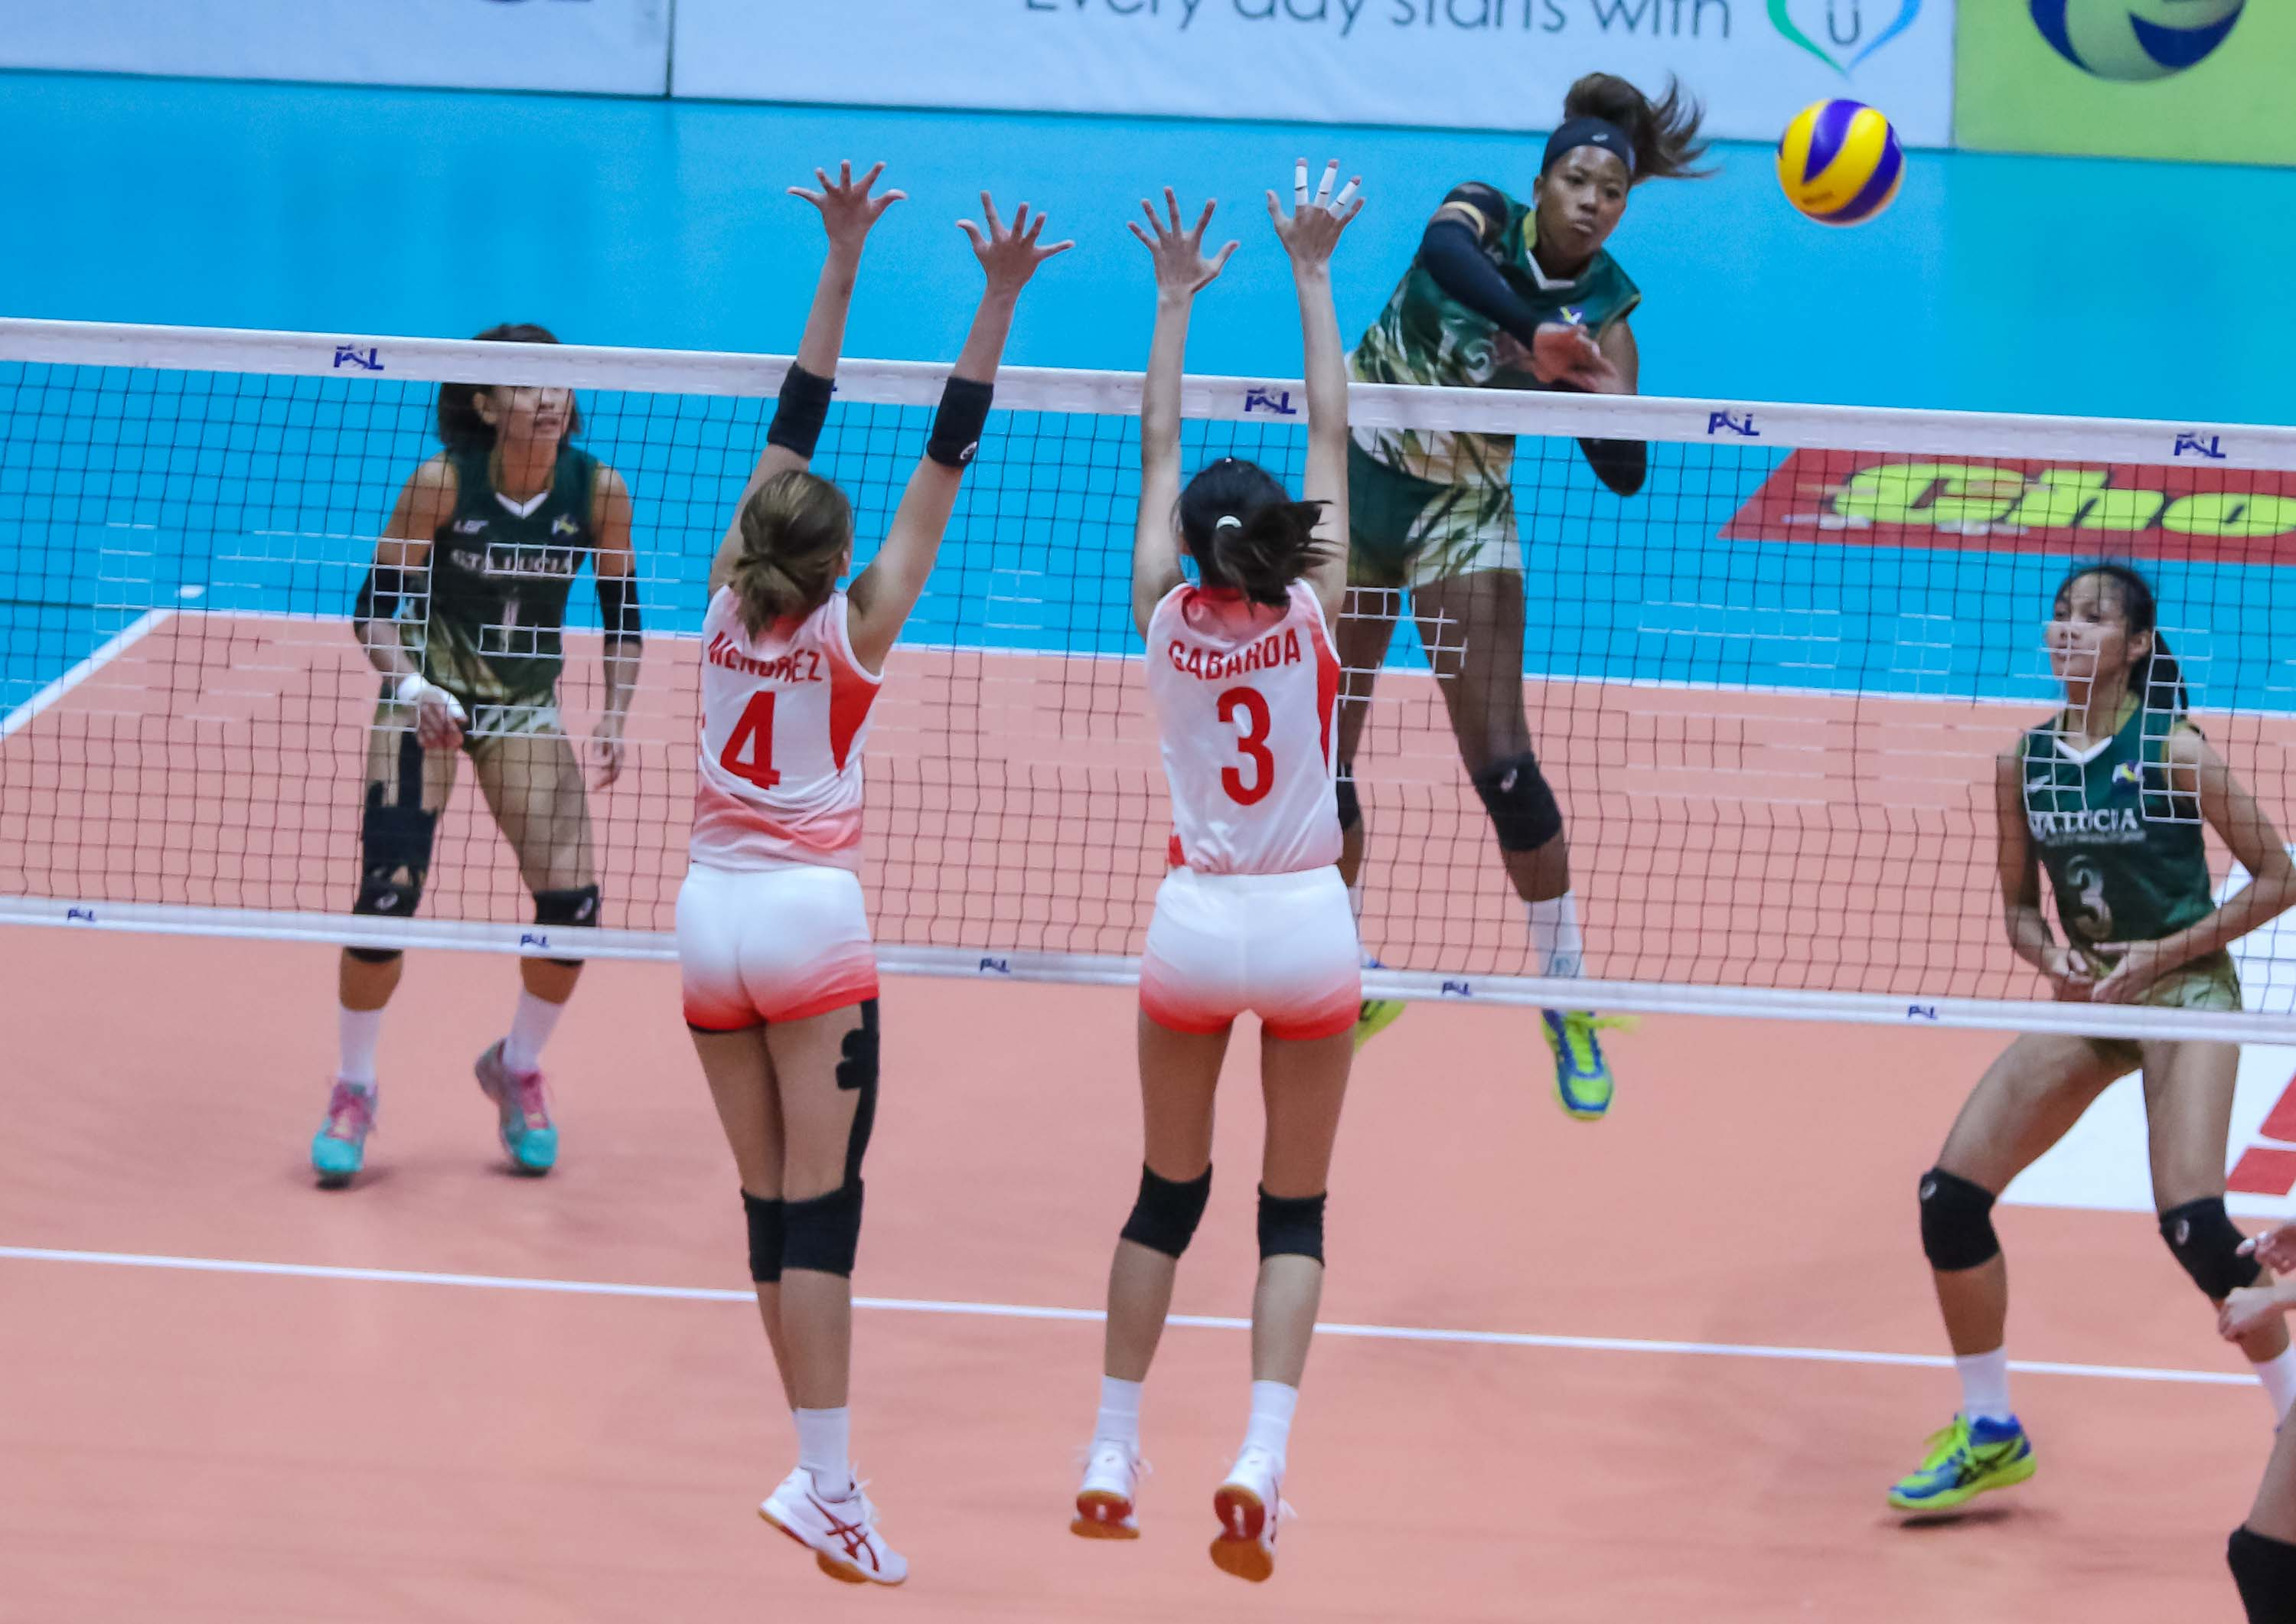 Tiebreaker Times Sta. Lucia evens record, steps closer to quarters berth News PSL Volleyball  Sta. Lucia Lady Realtors Rod Roque Rebecca Rivera MJ Phillips Mary Anne Mendrez Judith Abil Jonah Sabete Jackie Estoquia George Pascua Cherrylume Iron Lady Warriors 2018 PSL Season 2018 PSL Invitational Cup